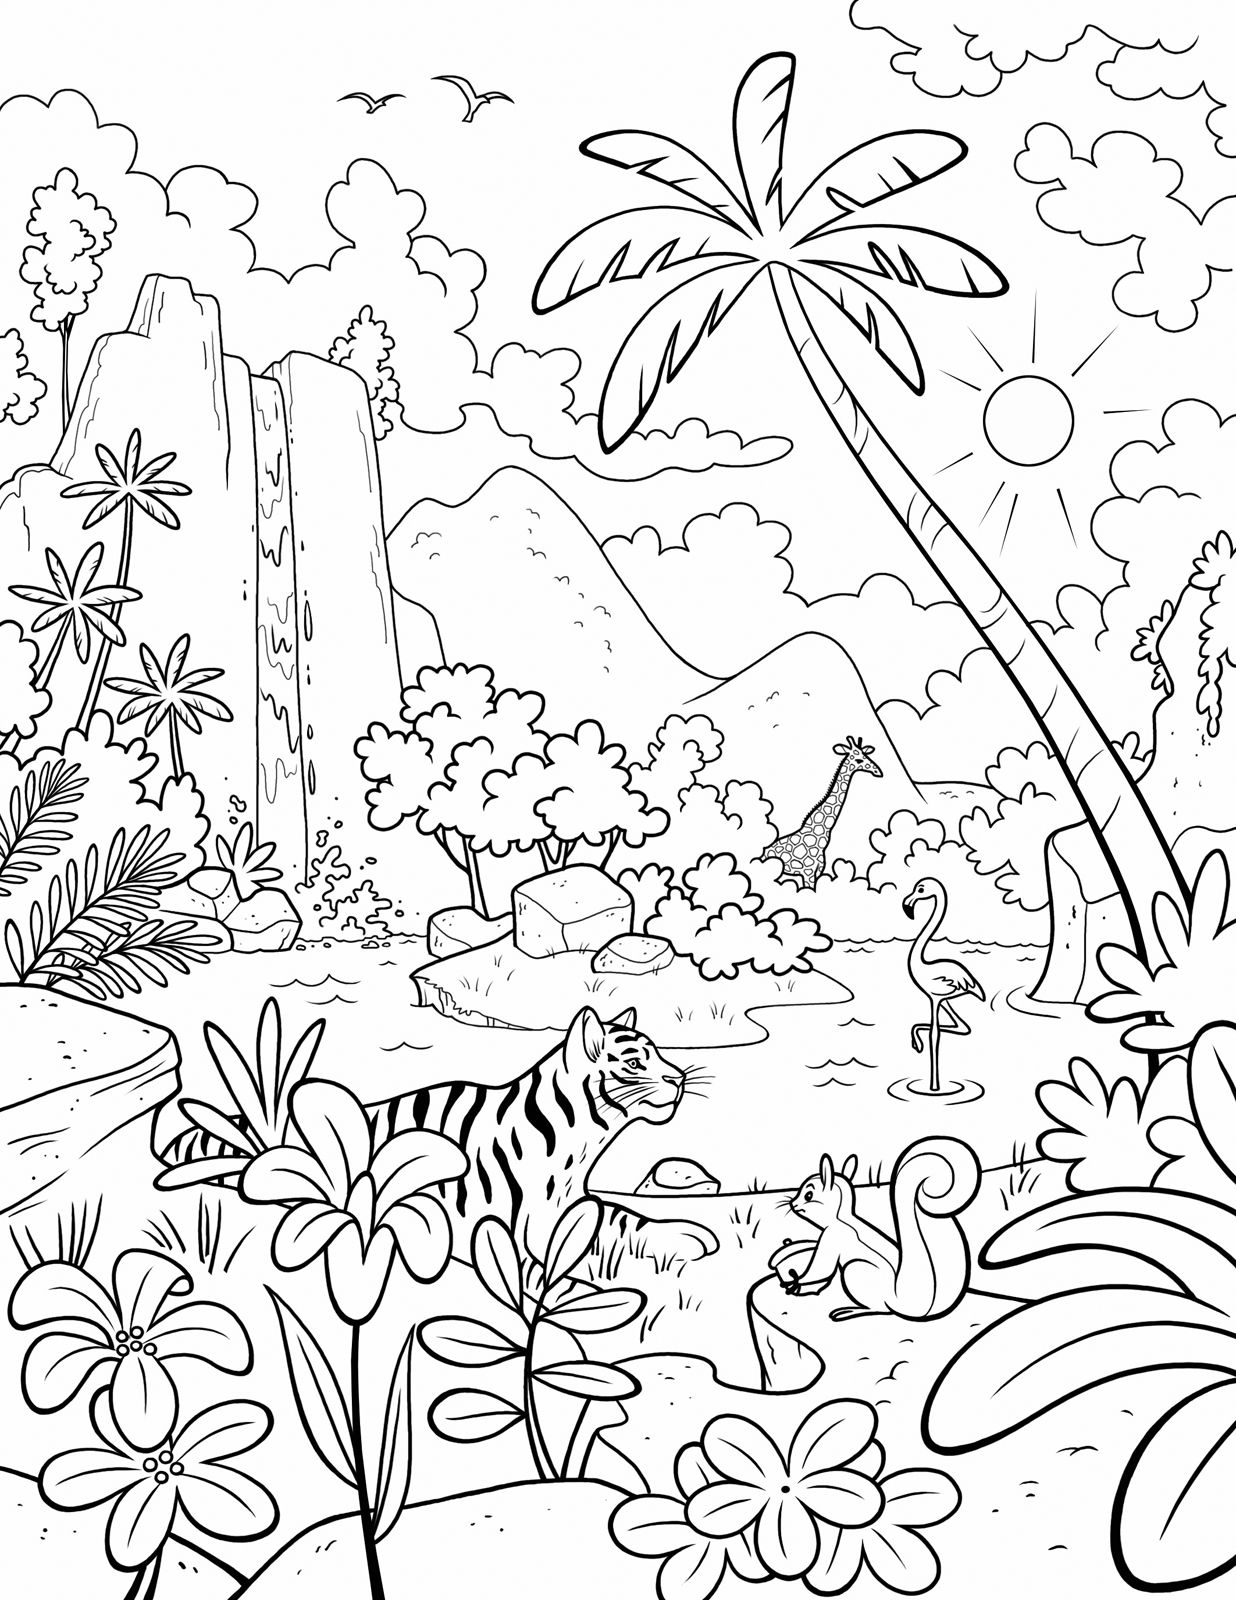 Our Beautiful World! A Lds Primary Coloring Page From Lds